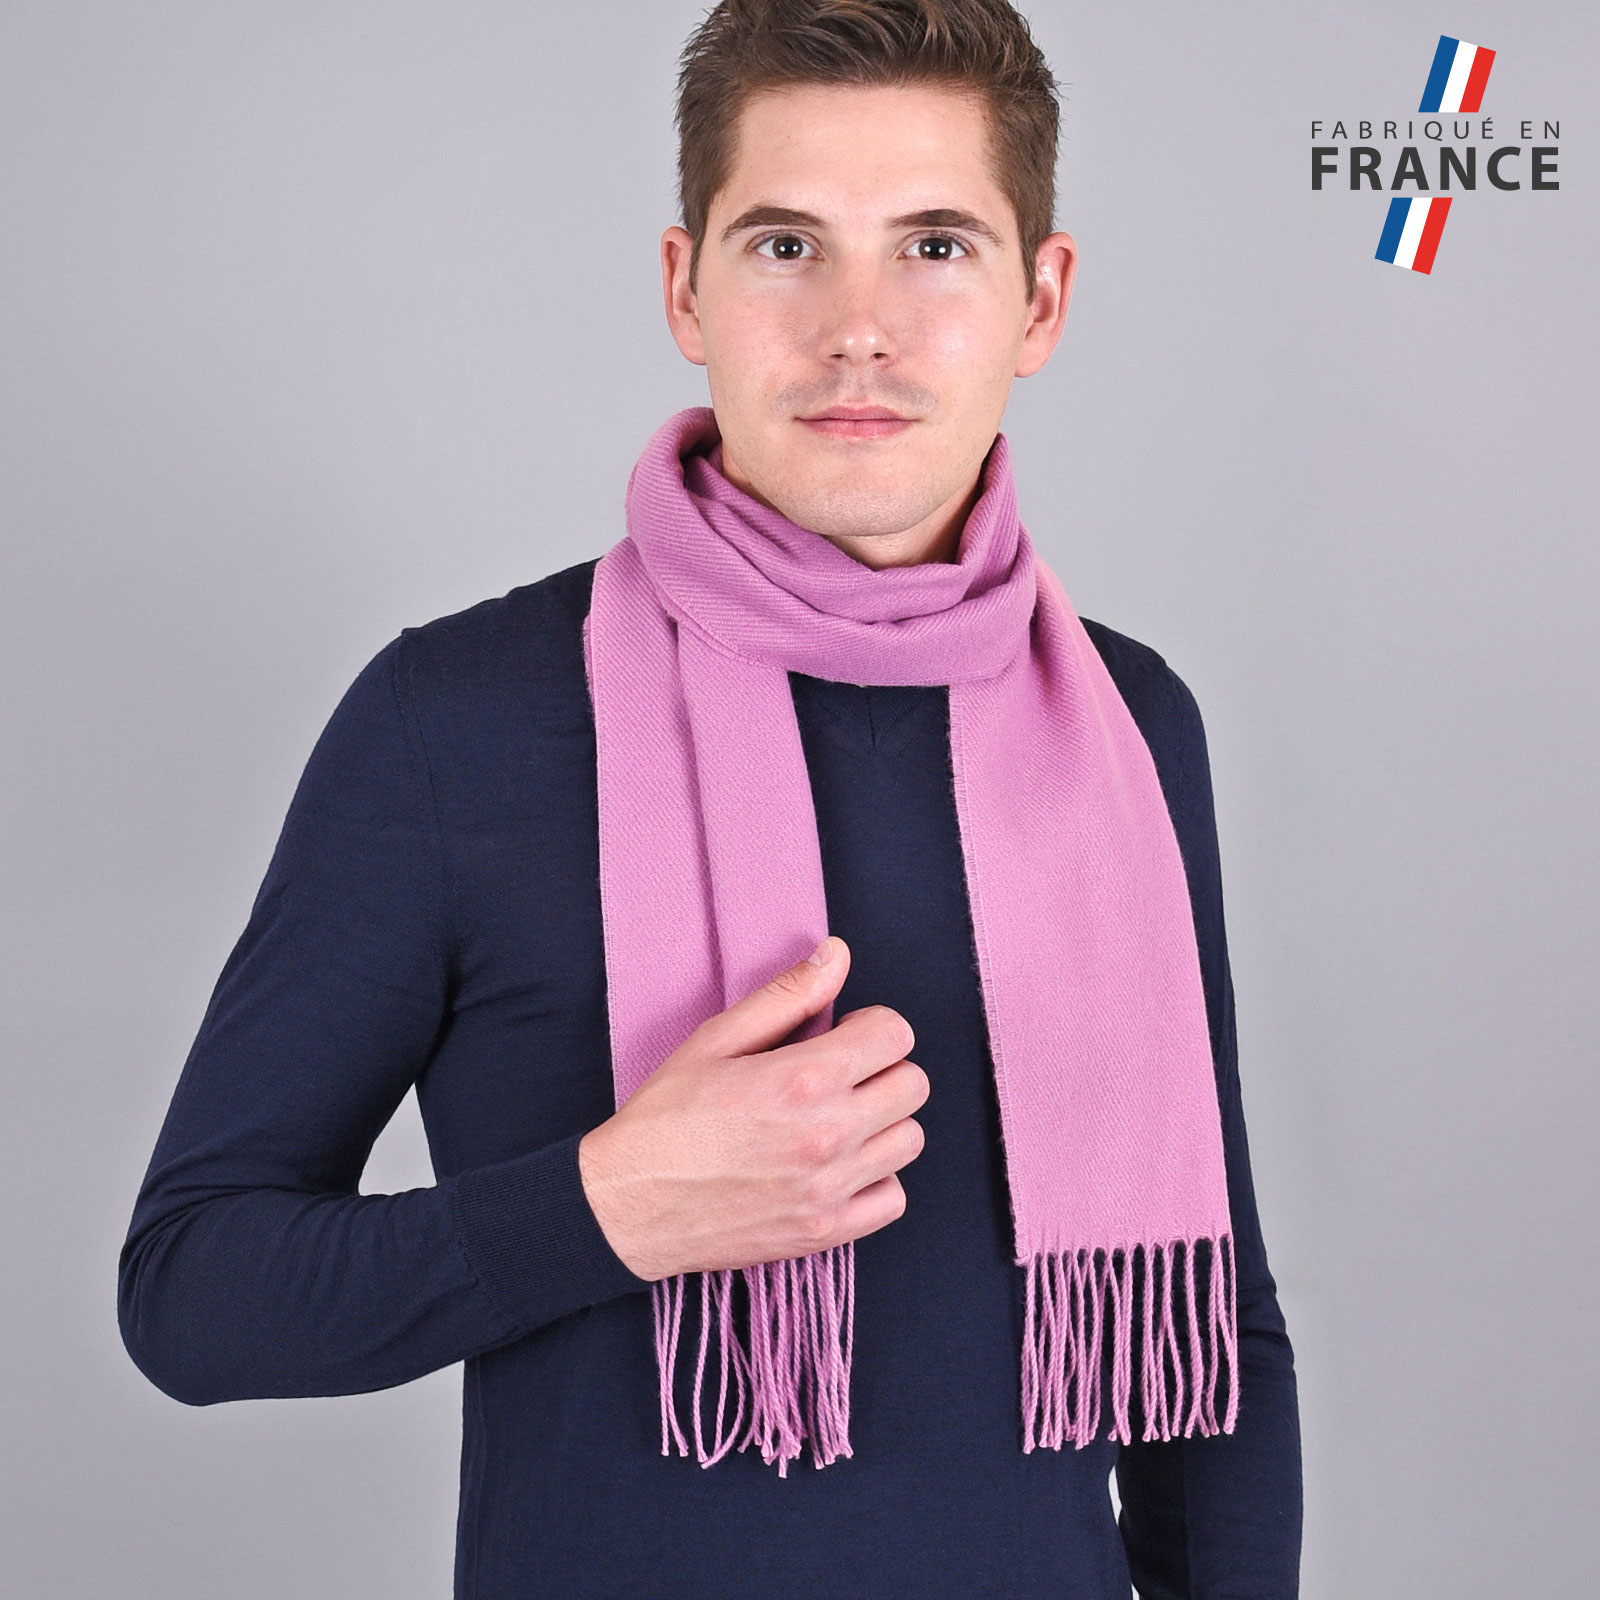 AT-03433-VH16-LB_FR-echarpe-homme-rose-franges-fabrication-france